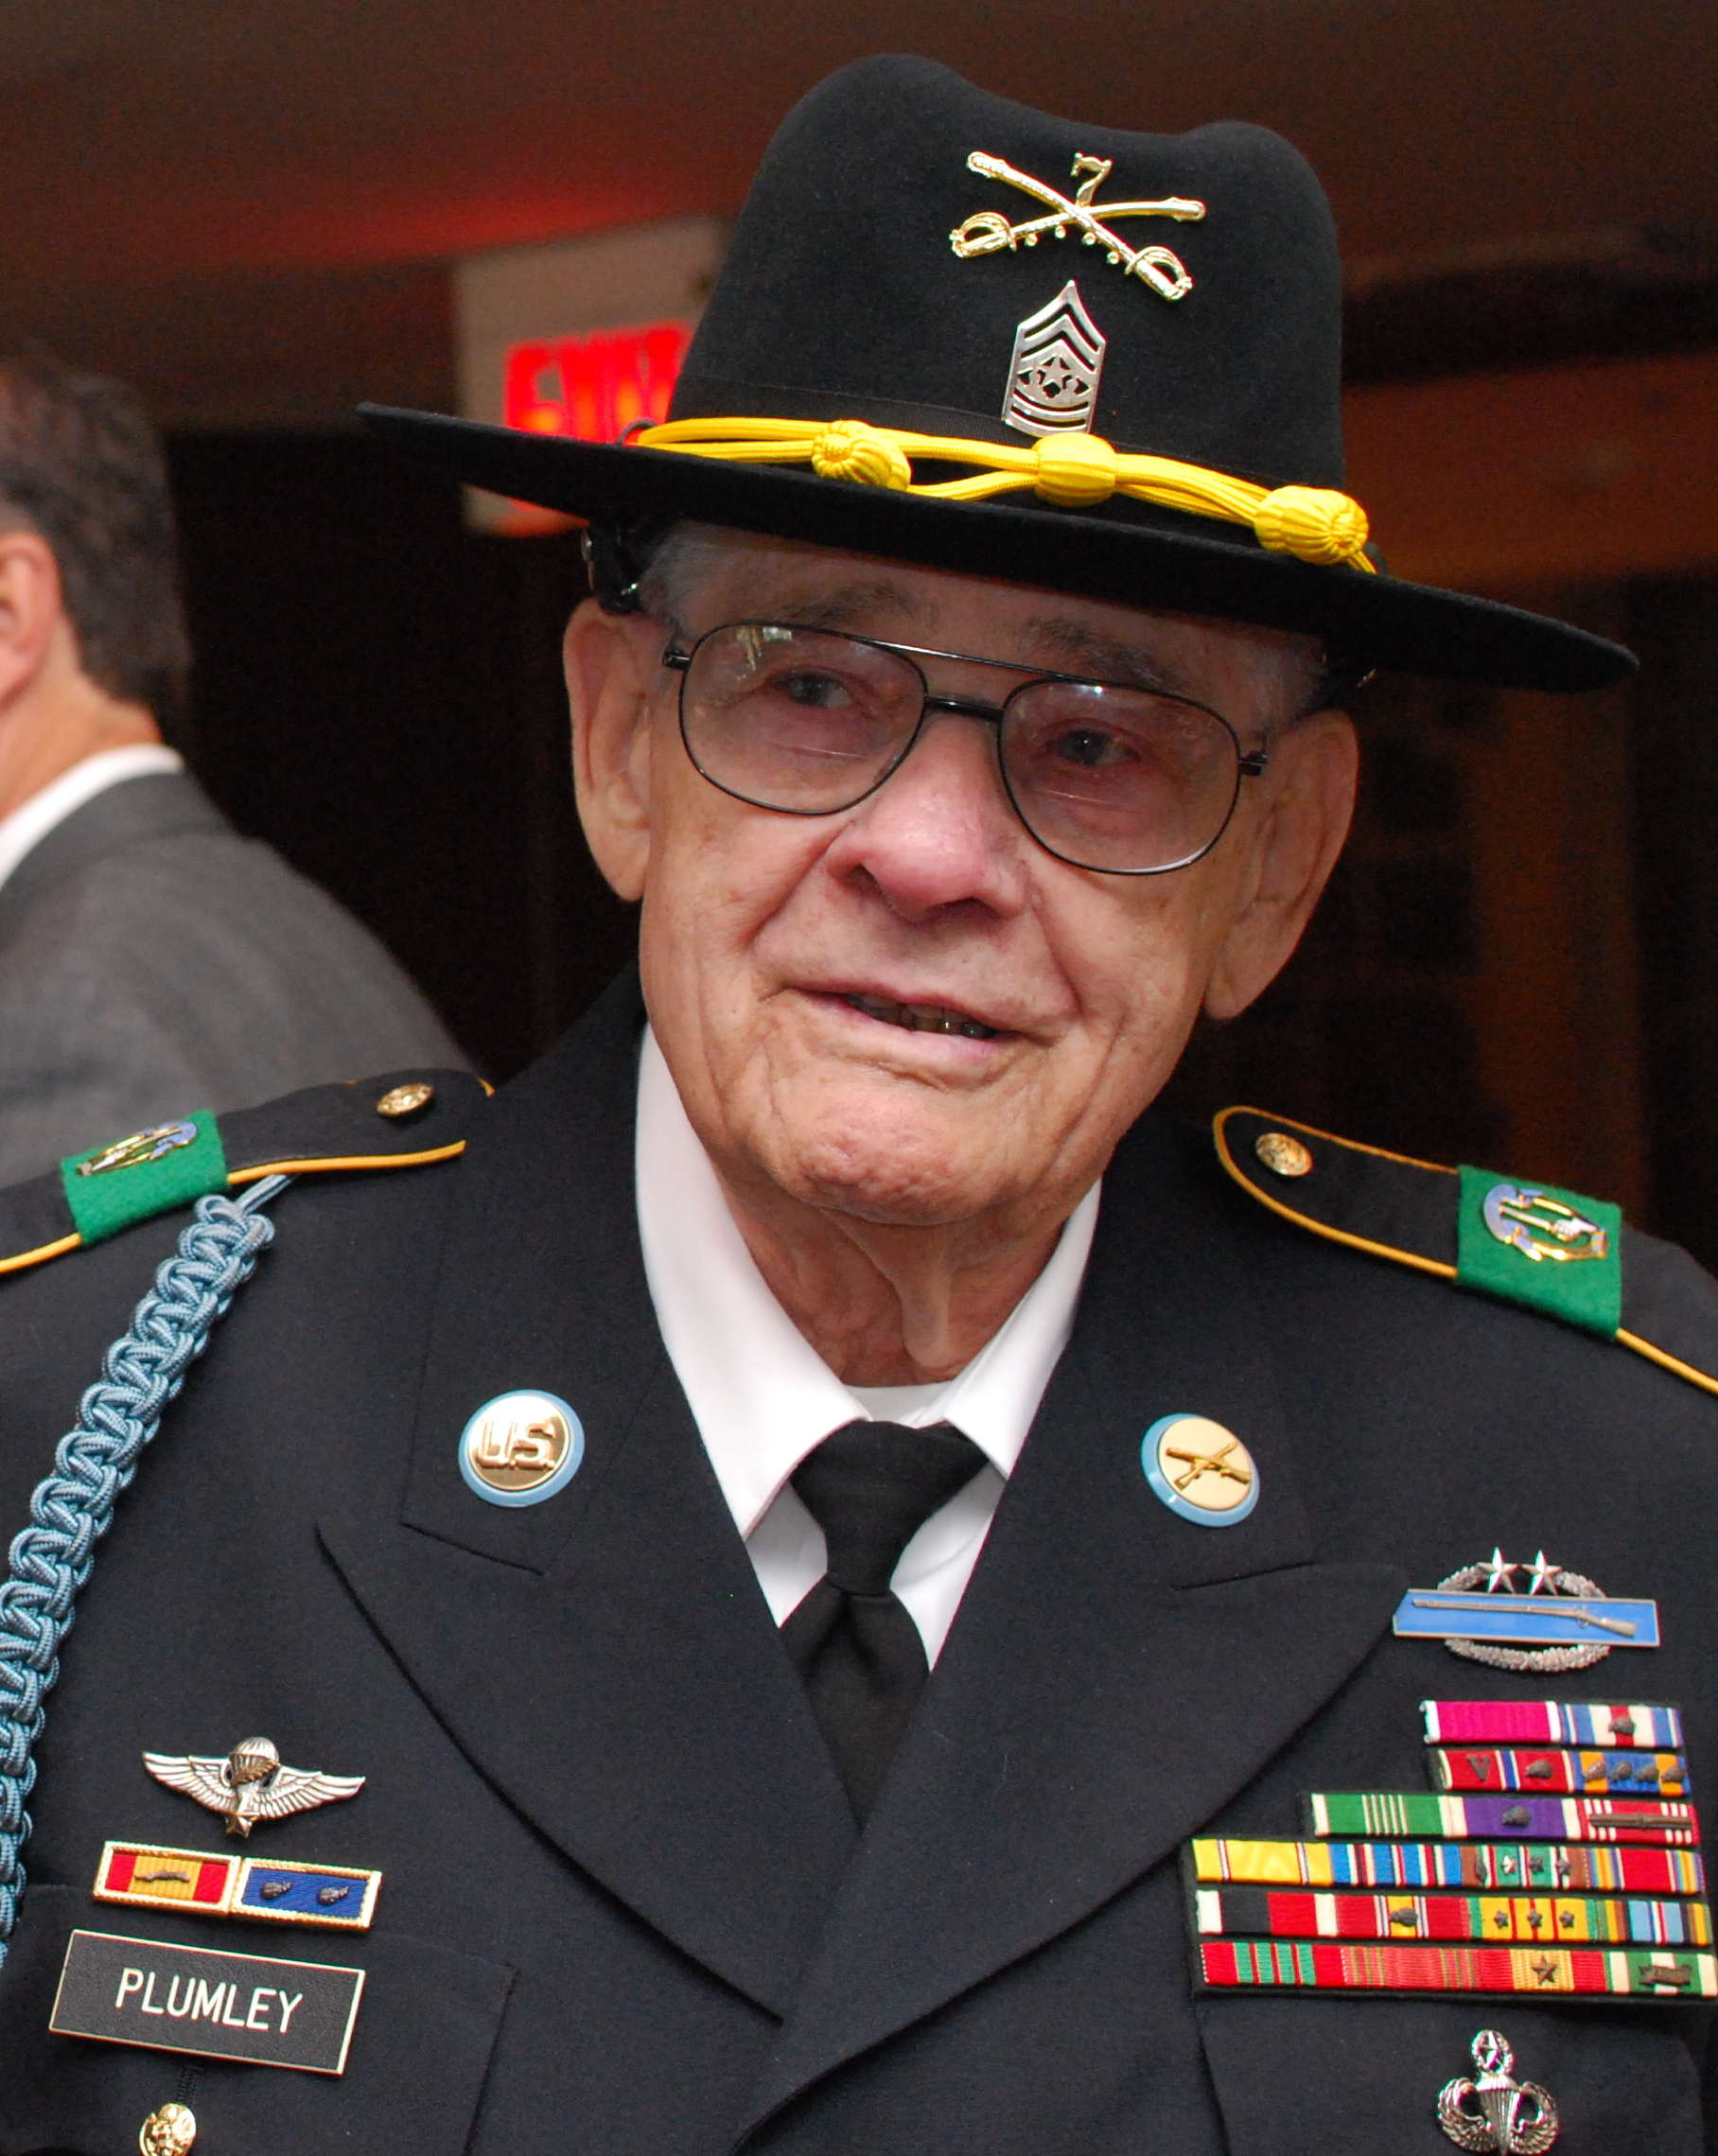 File:CSM(R) Basil L. Plumley at West Point 10 May 2010.JPG ...